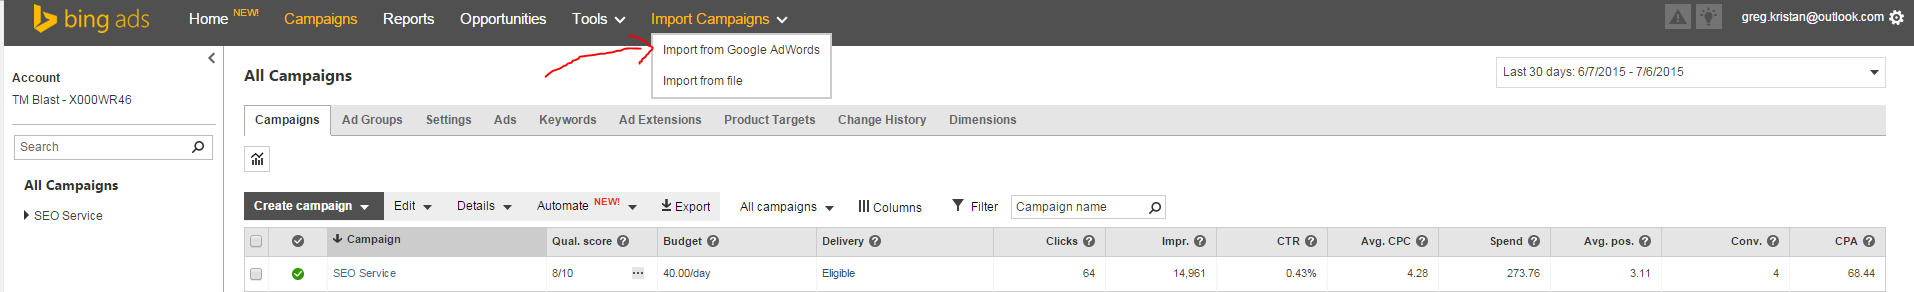 How to Import Your Google AdWords Account into Bing Ads